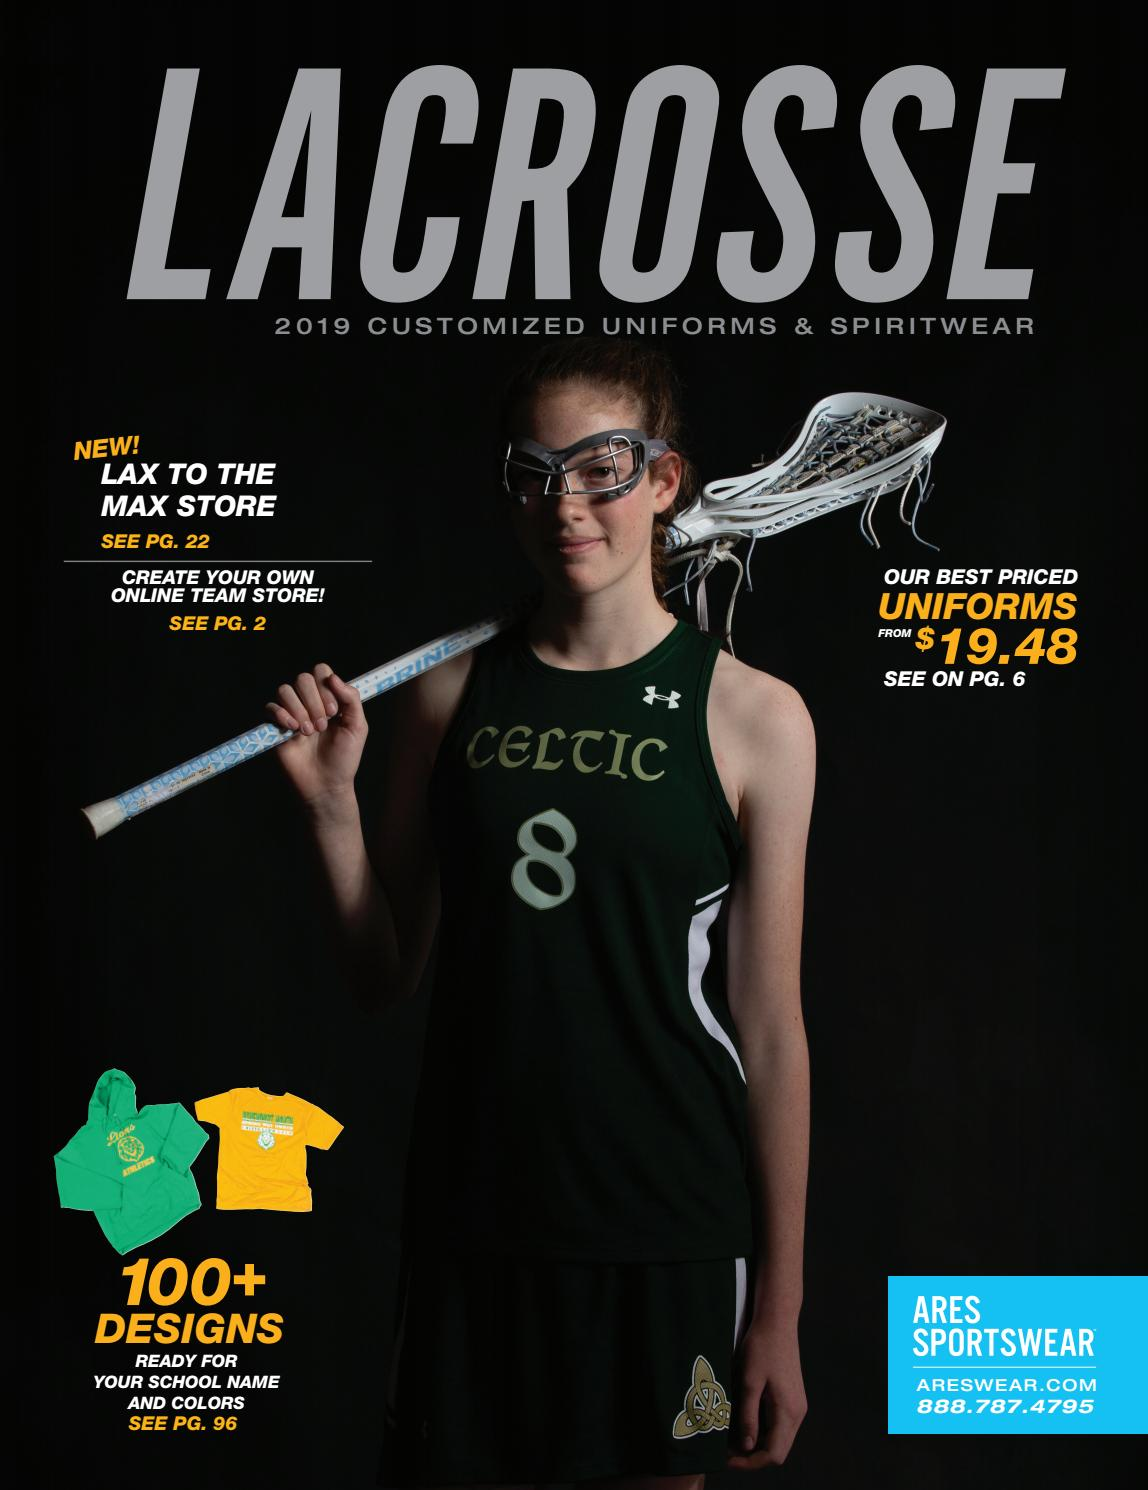 3e3a7c2a 2019 Ares Sportswear Girls Lacrosse Catalog by Ares Sportswear - issuu